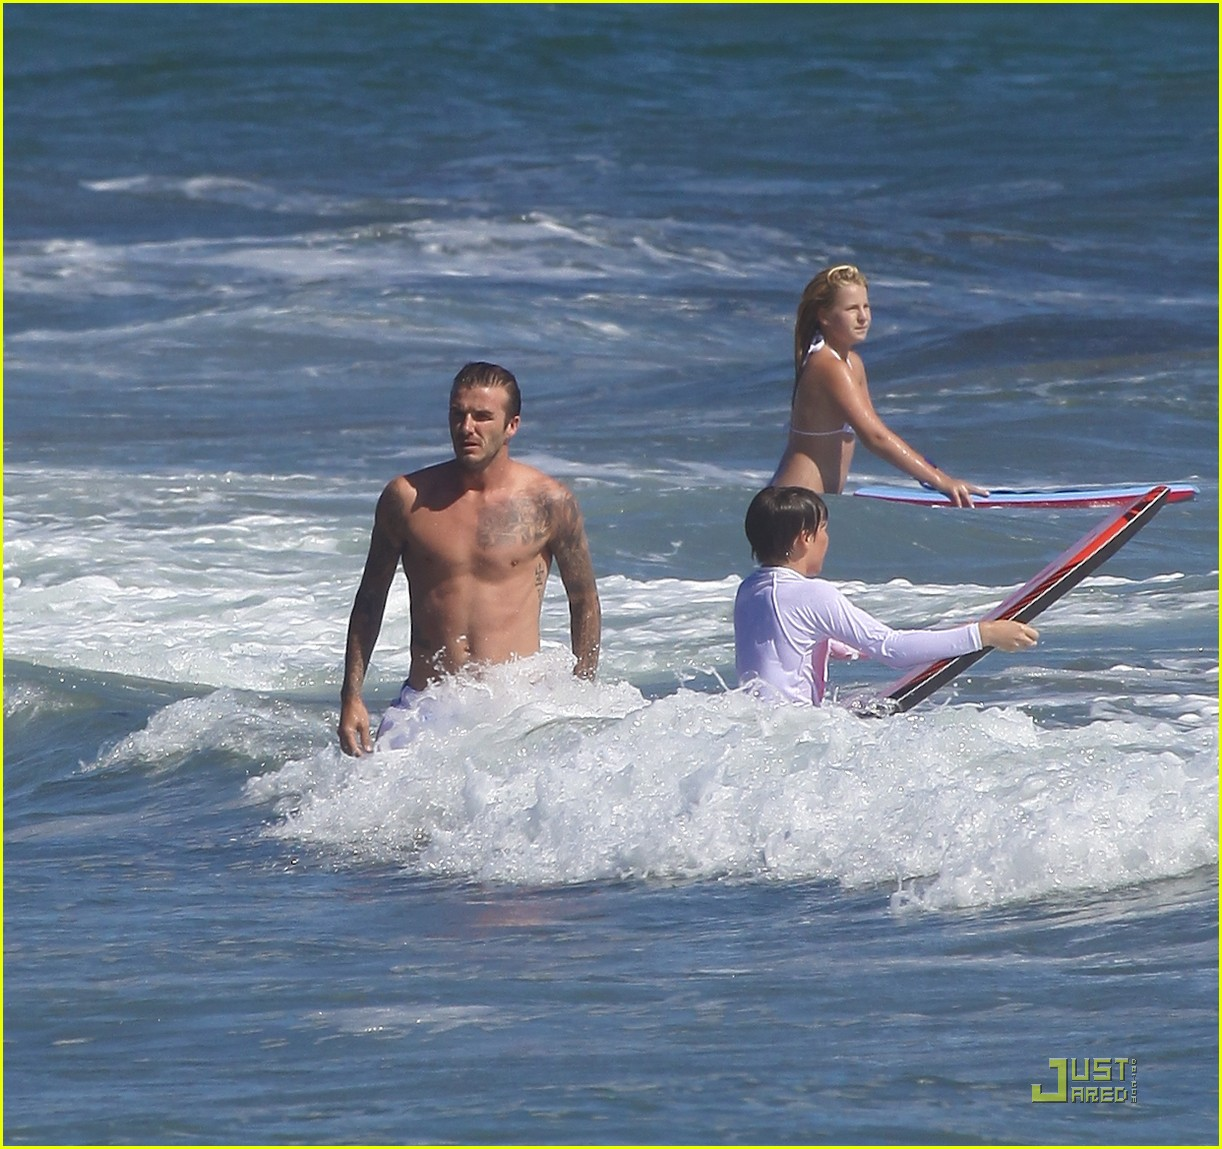 david beckham shirtless surfing  18